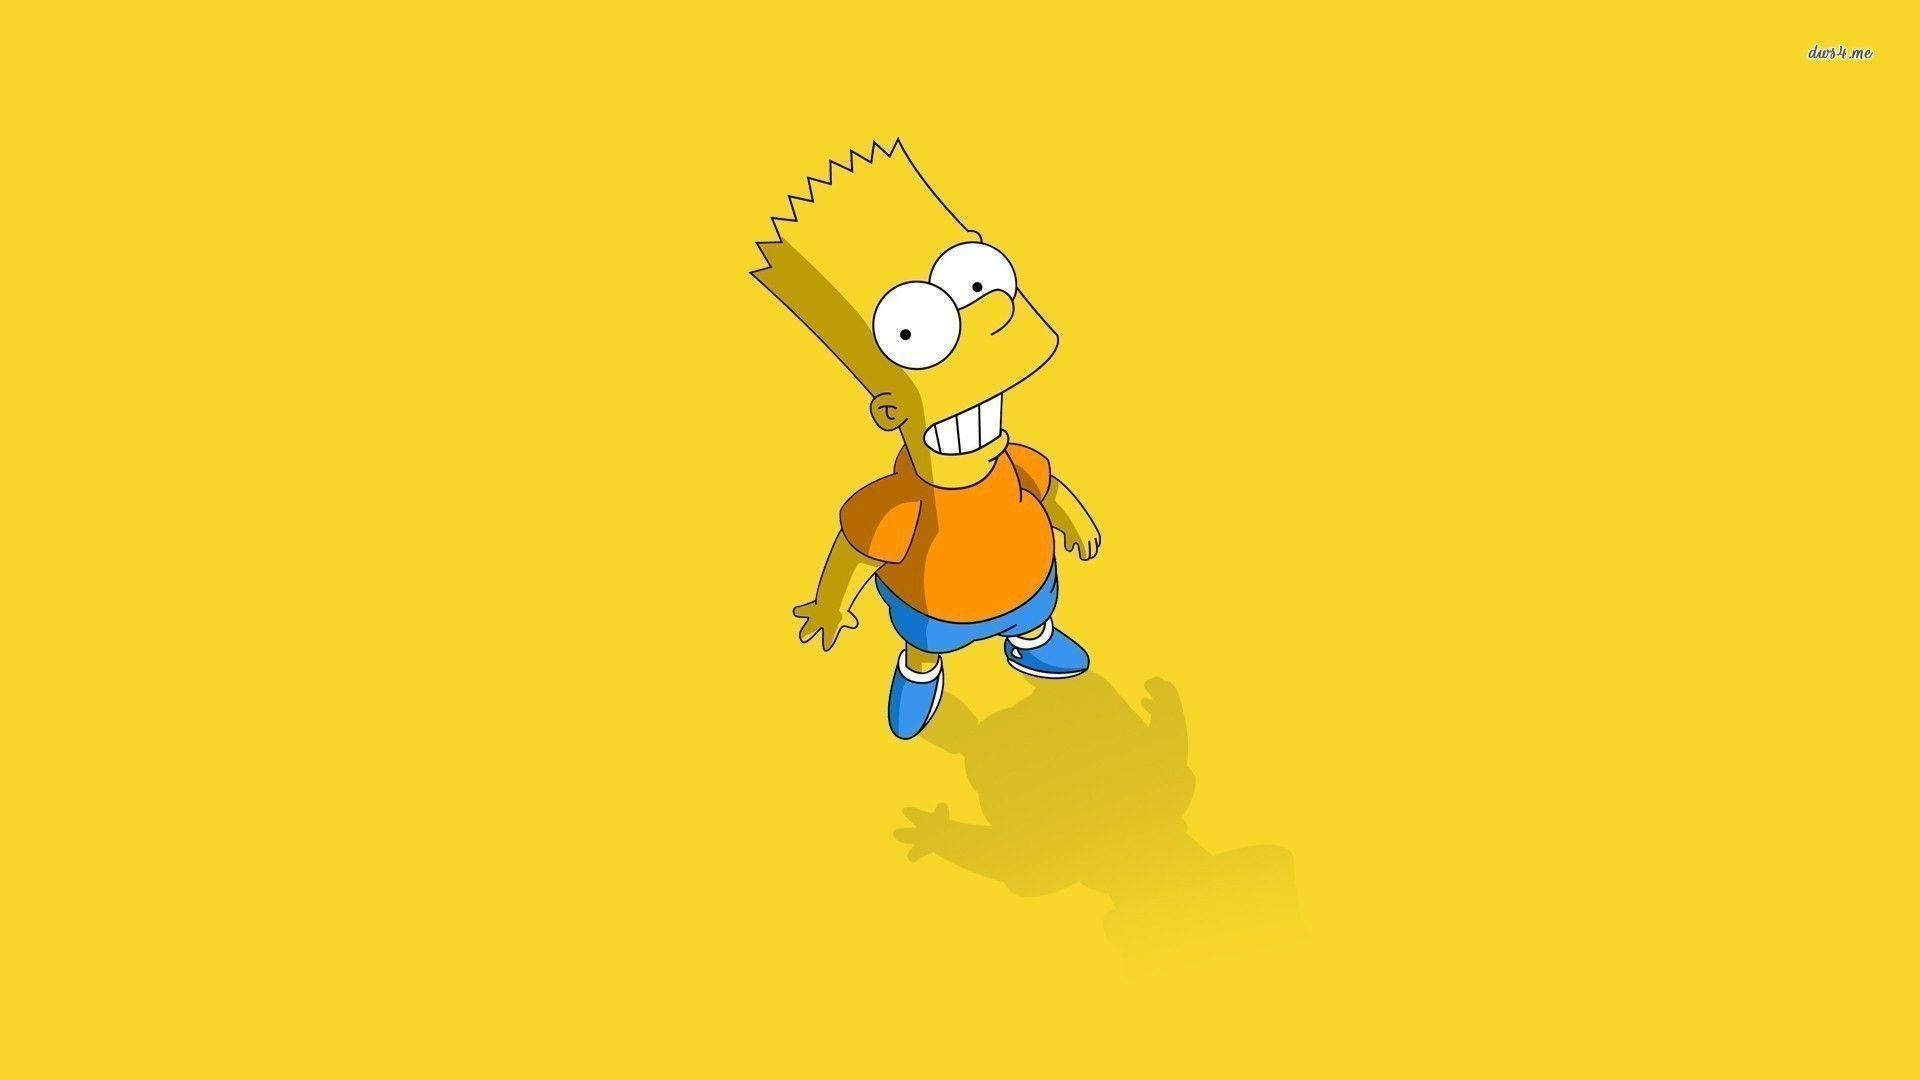 simpson wallpapers wallpaper cave